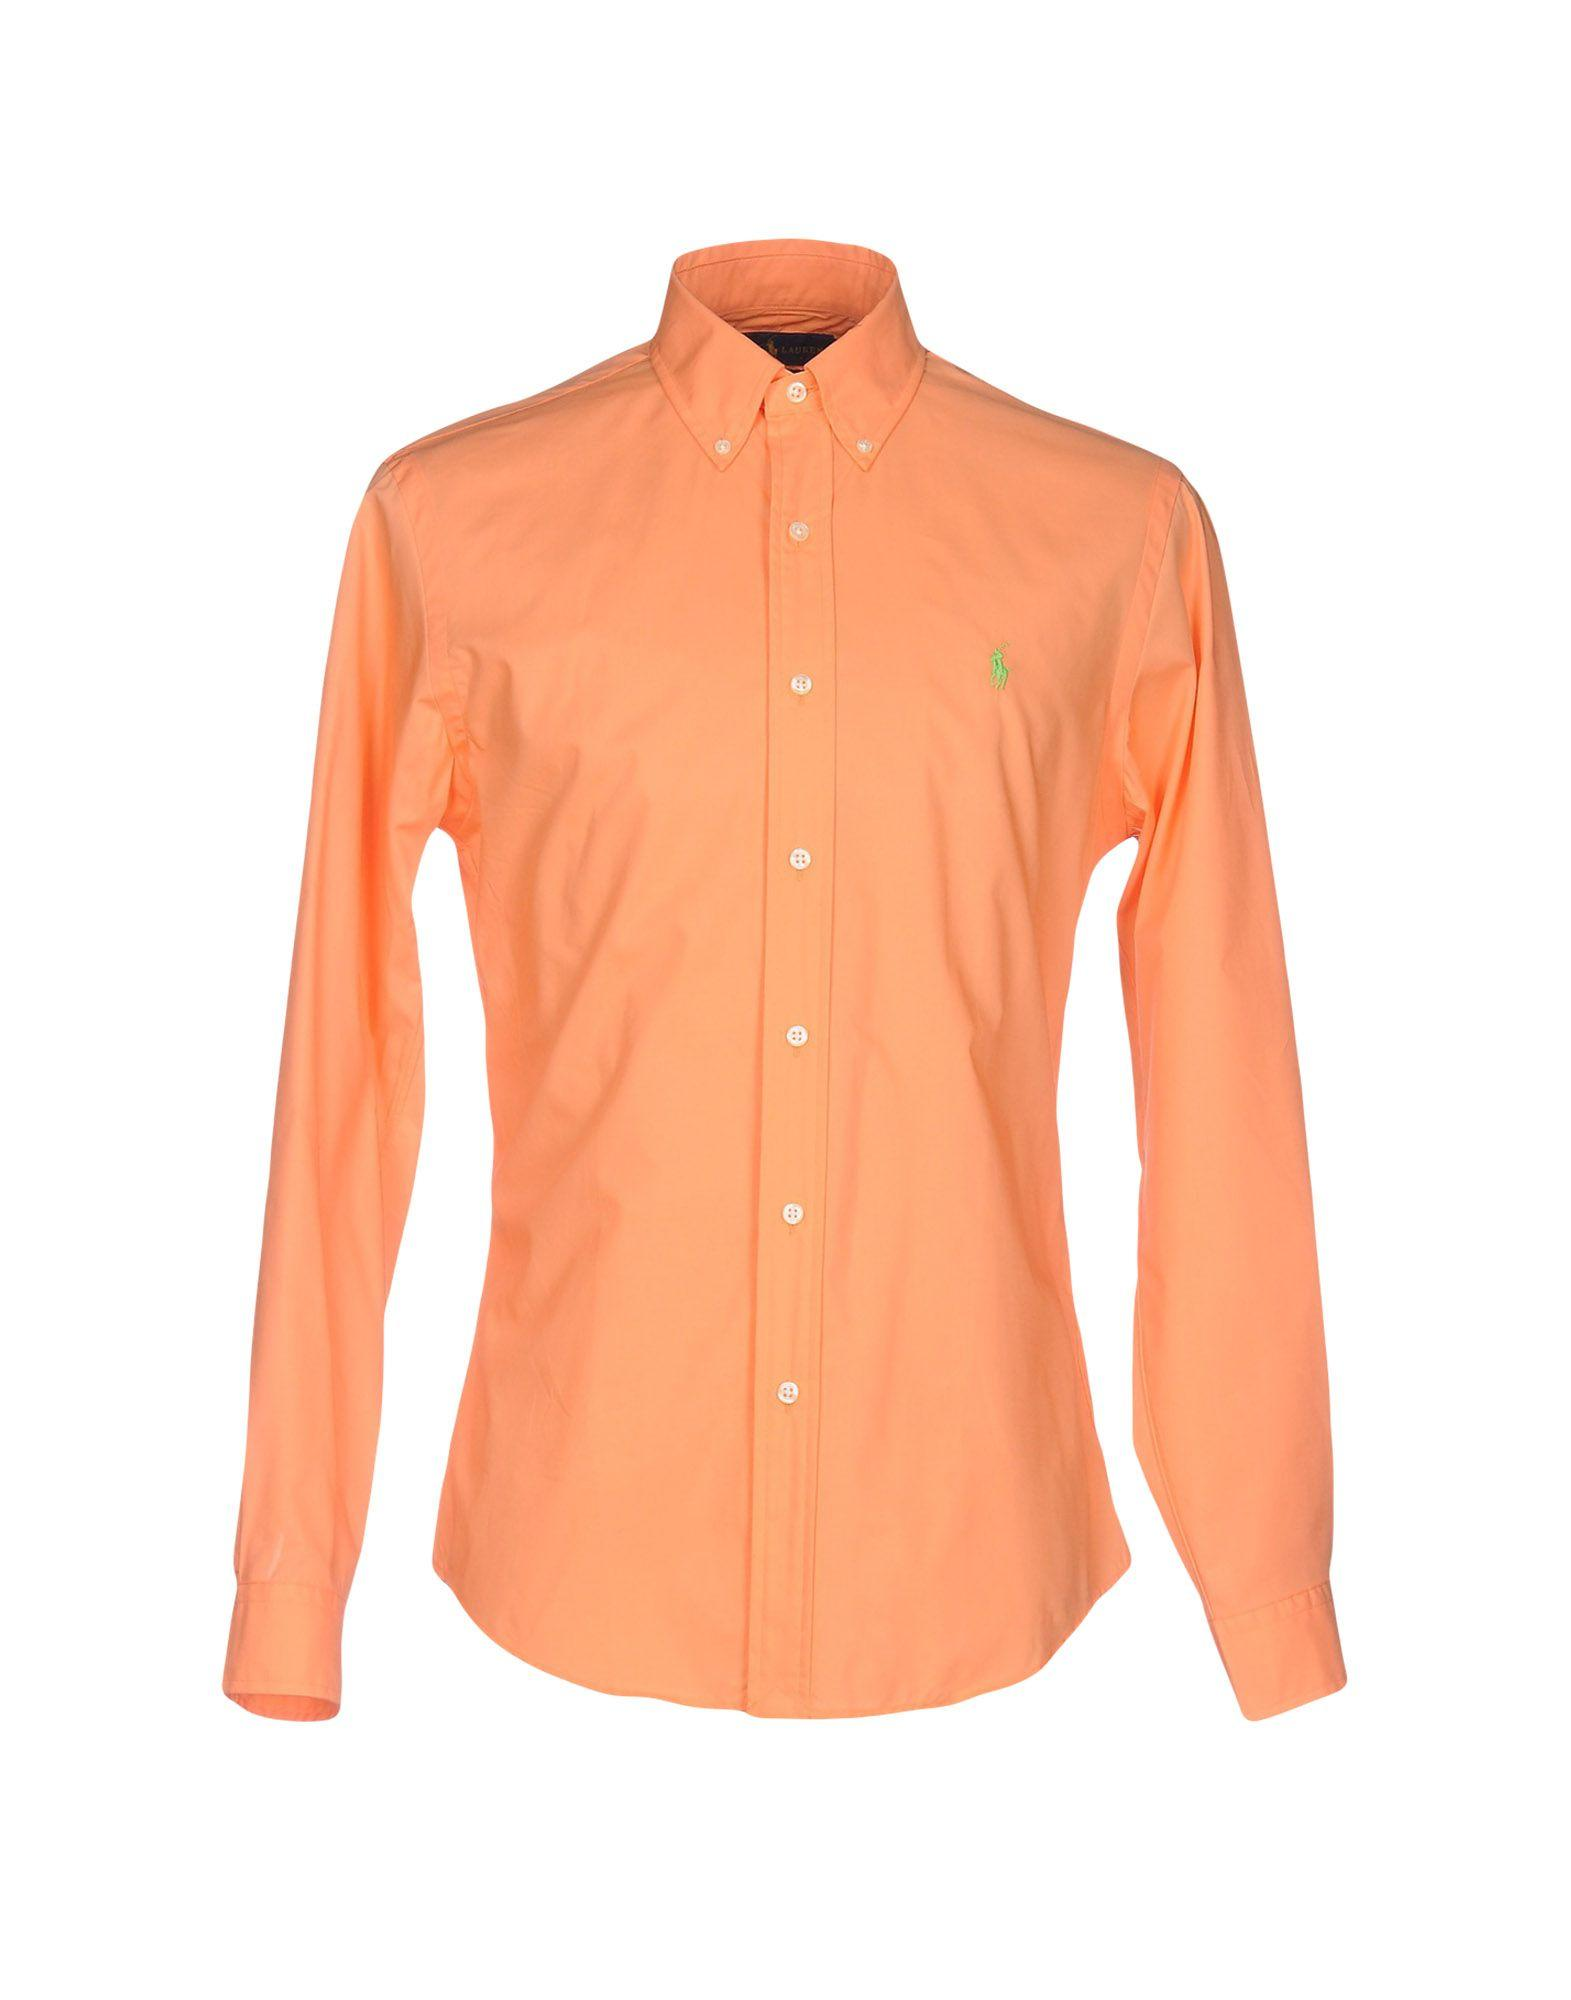 9dfe37f0 Ralph Lauren Solid Color Shirt In Salmon Pink | ModeSens